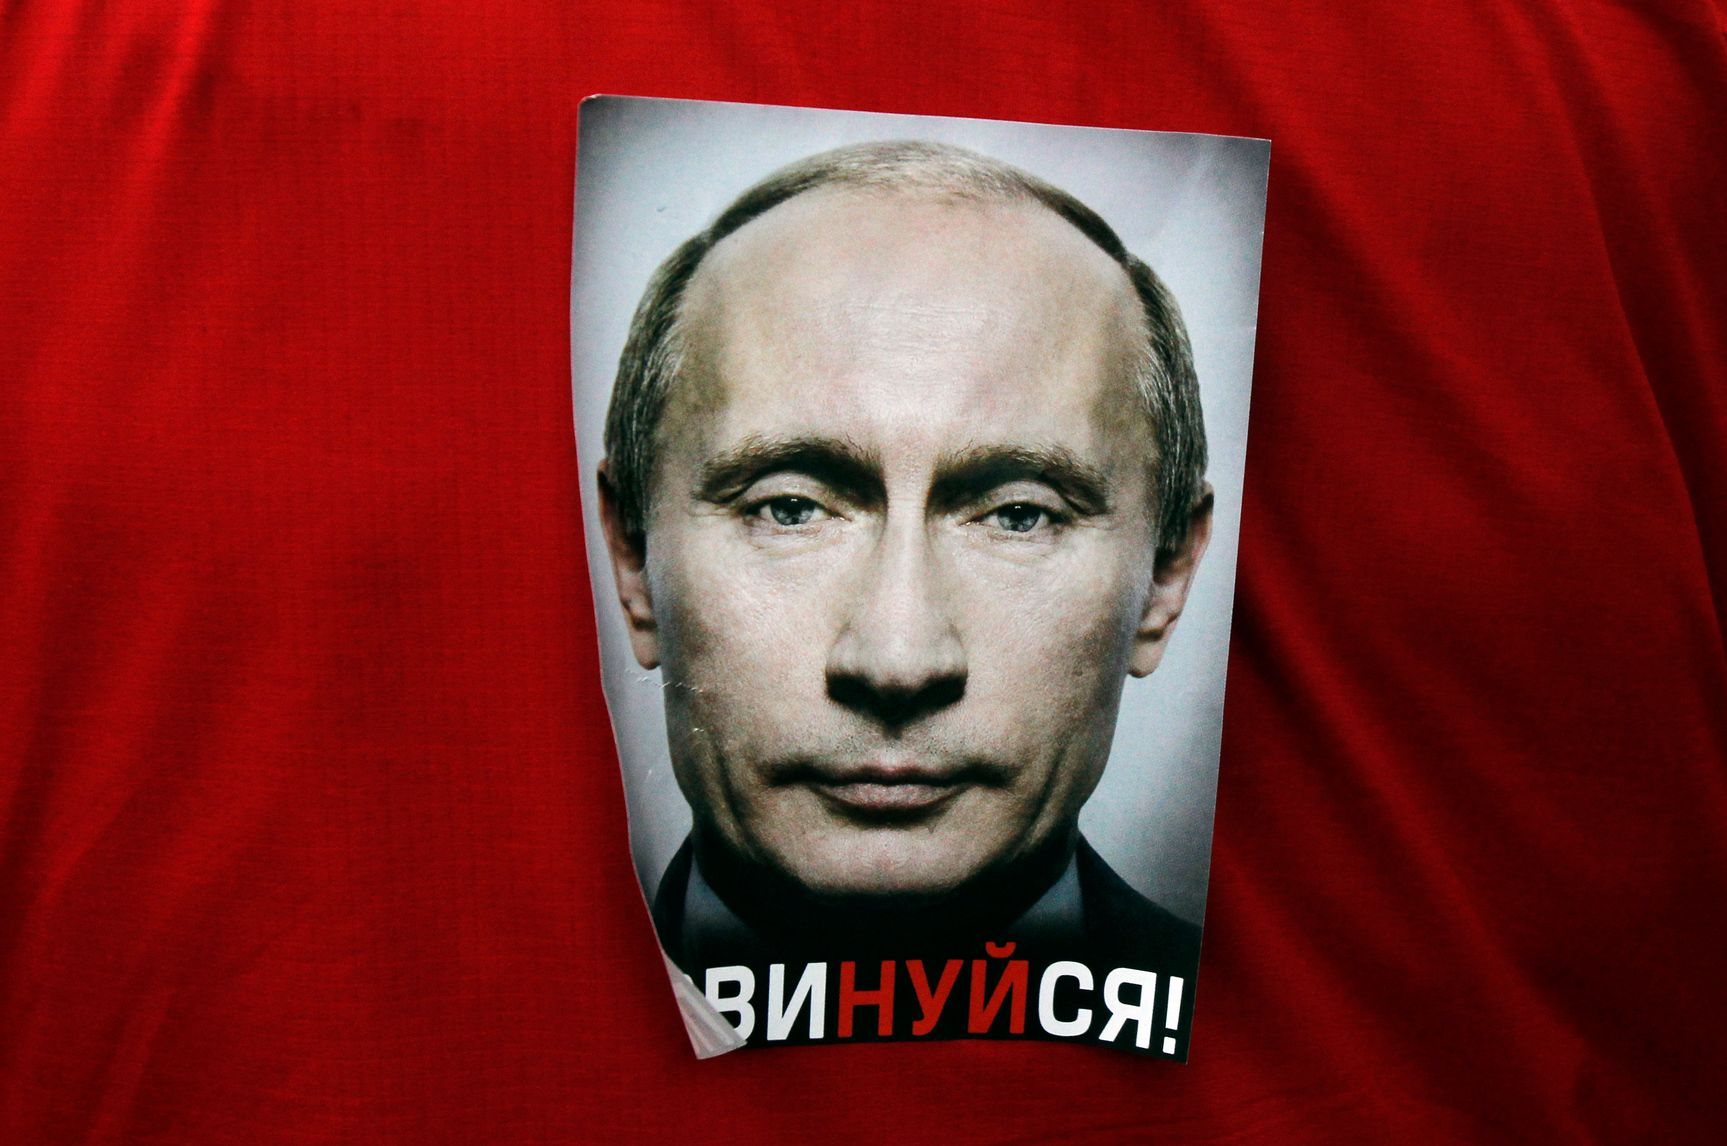 Russia Is Not the Soviet Union